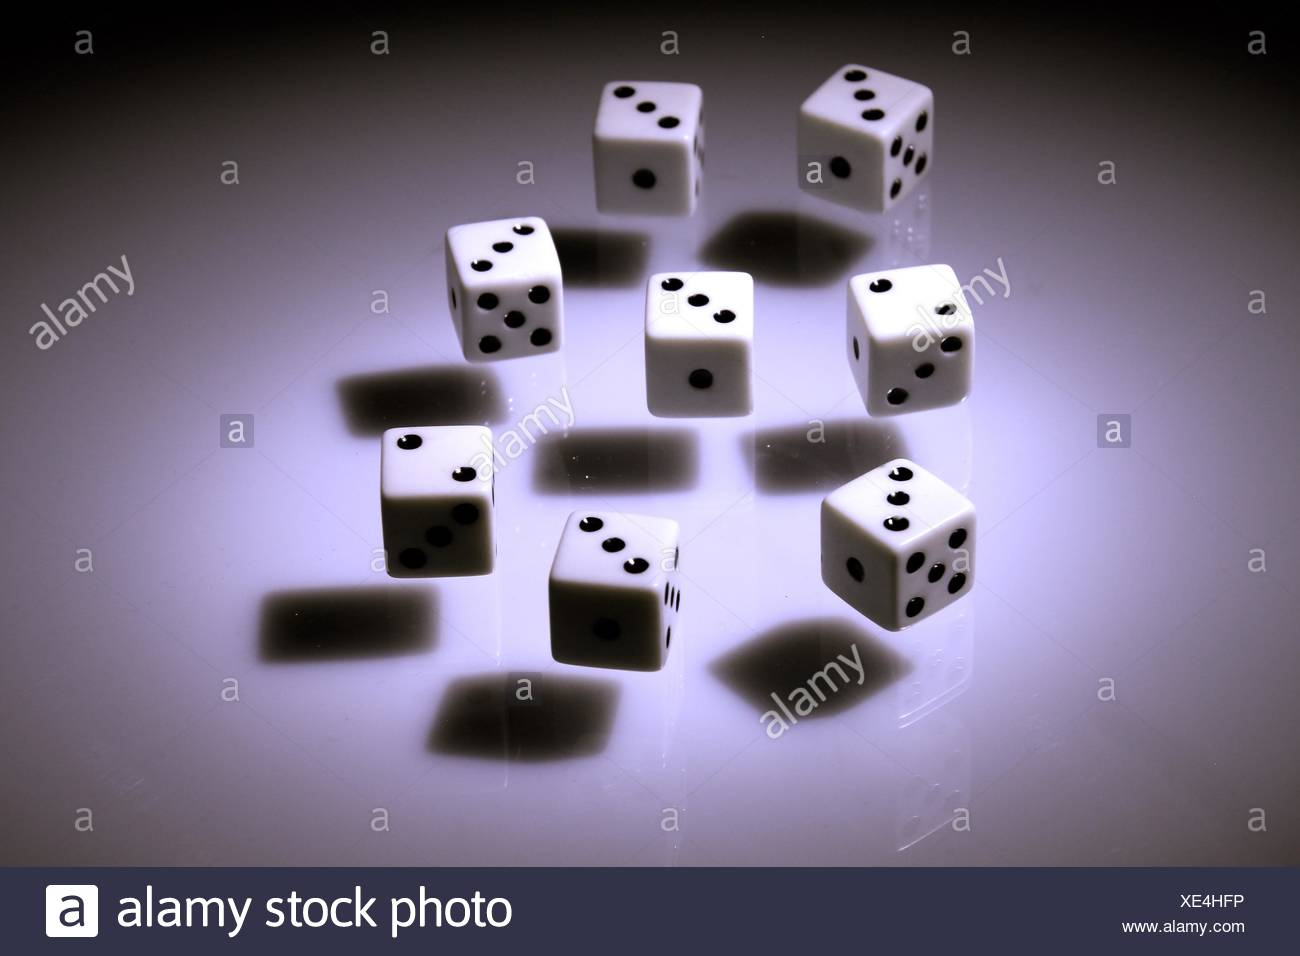 High Angle View Of Dice Against Colored Background - Stock Image